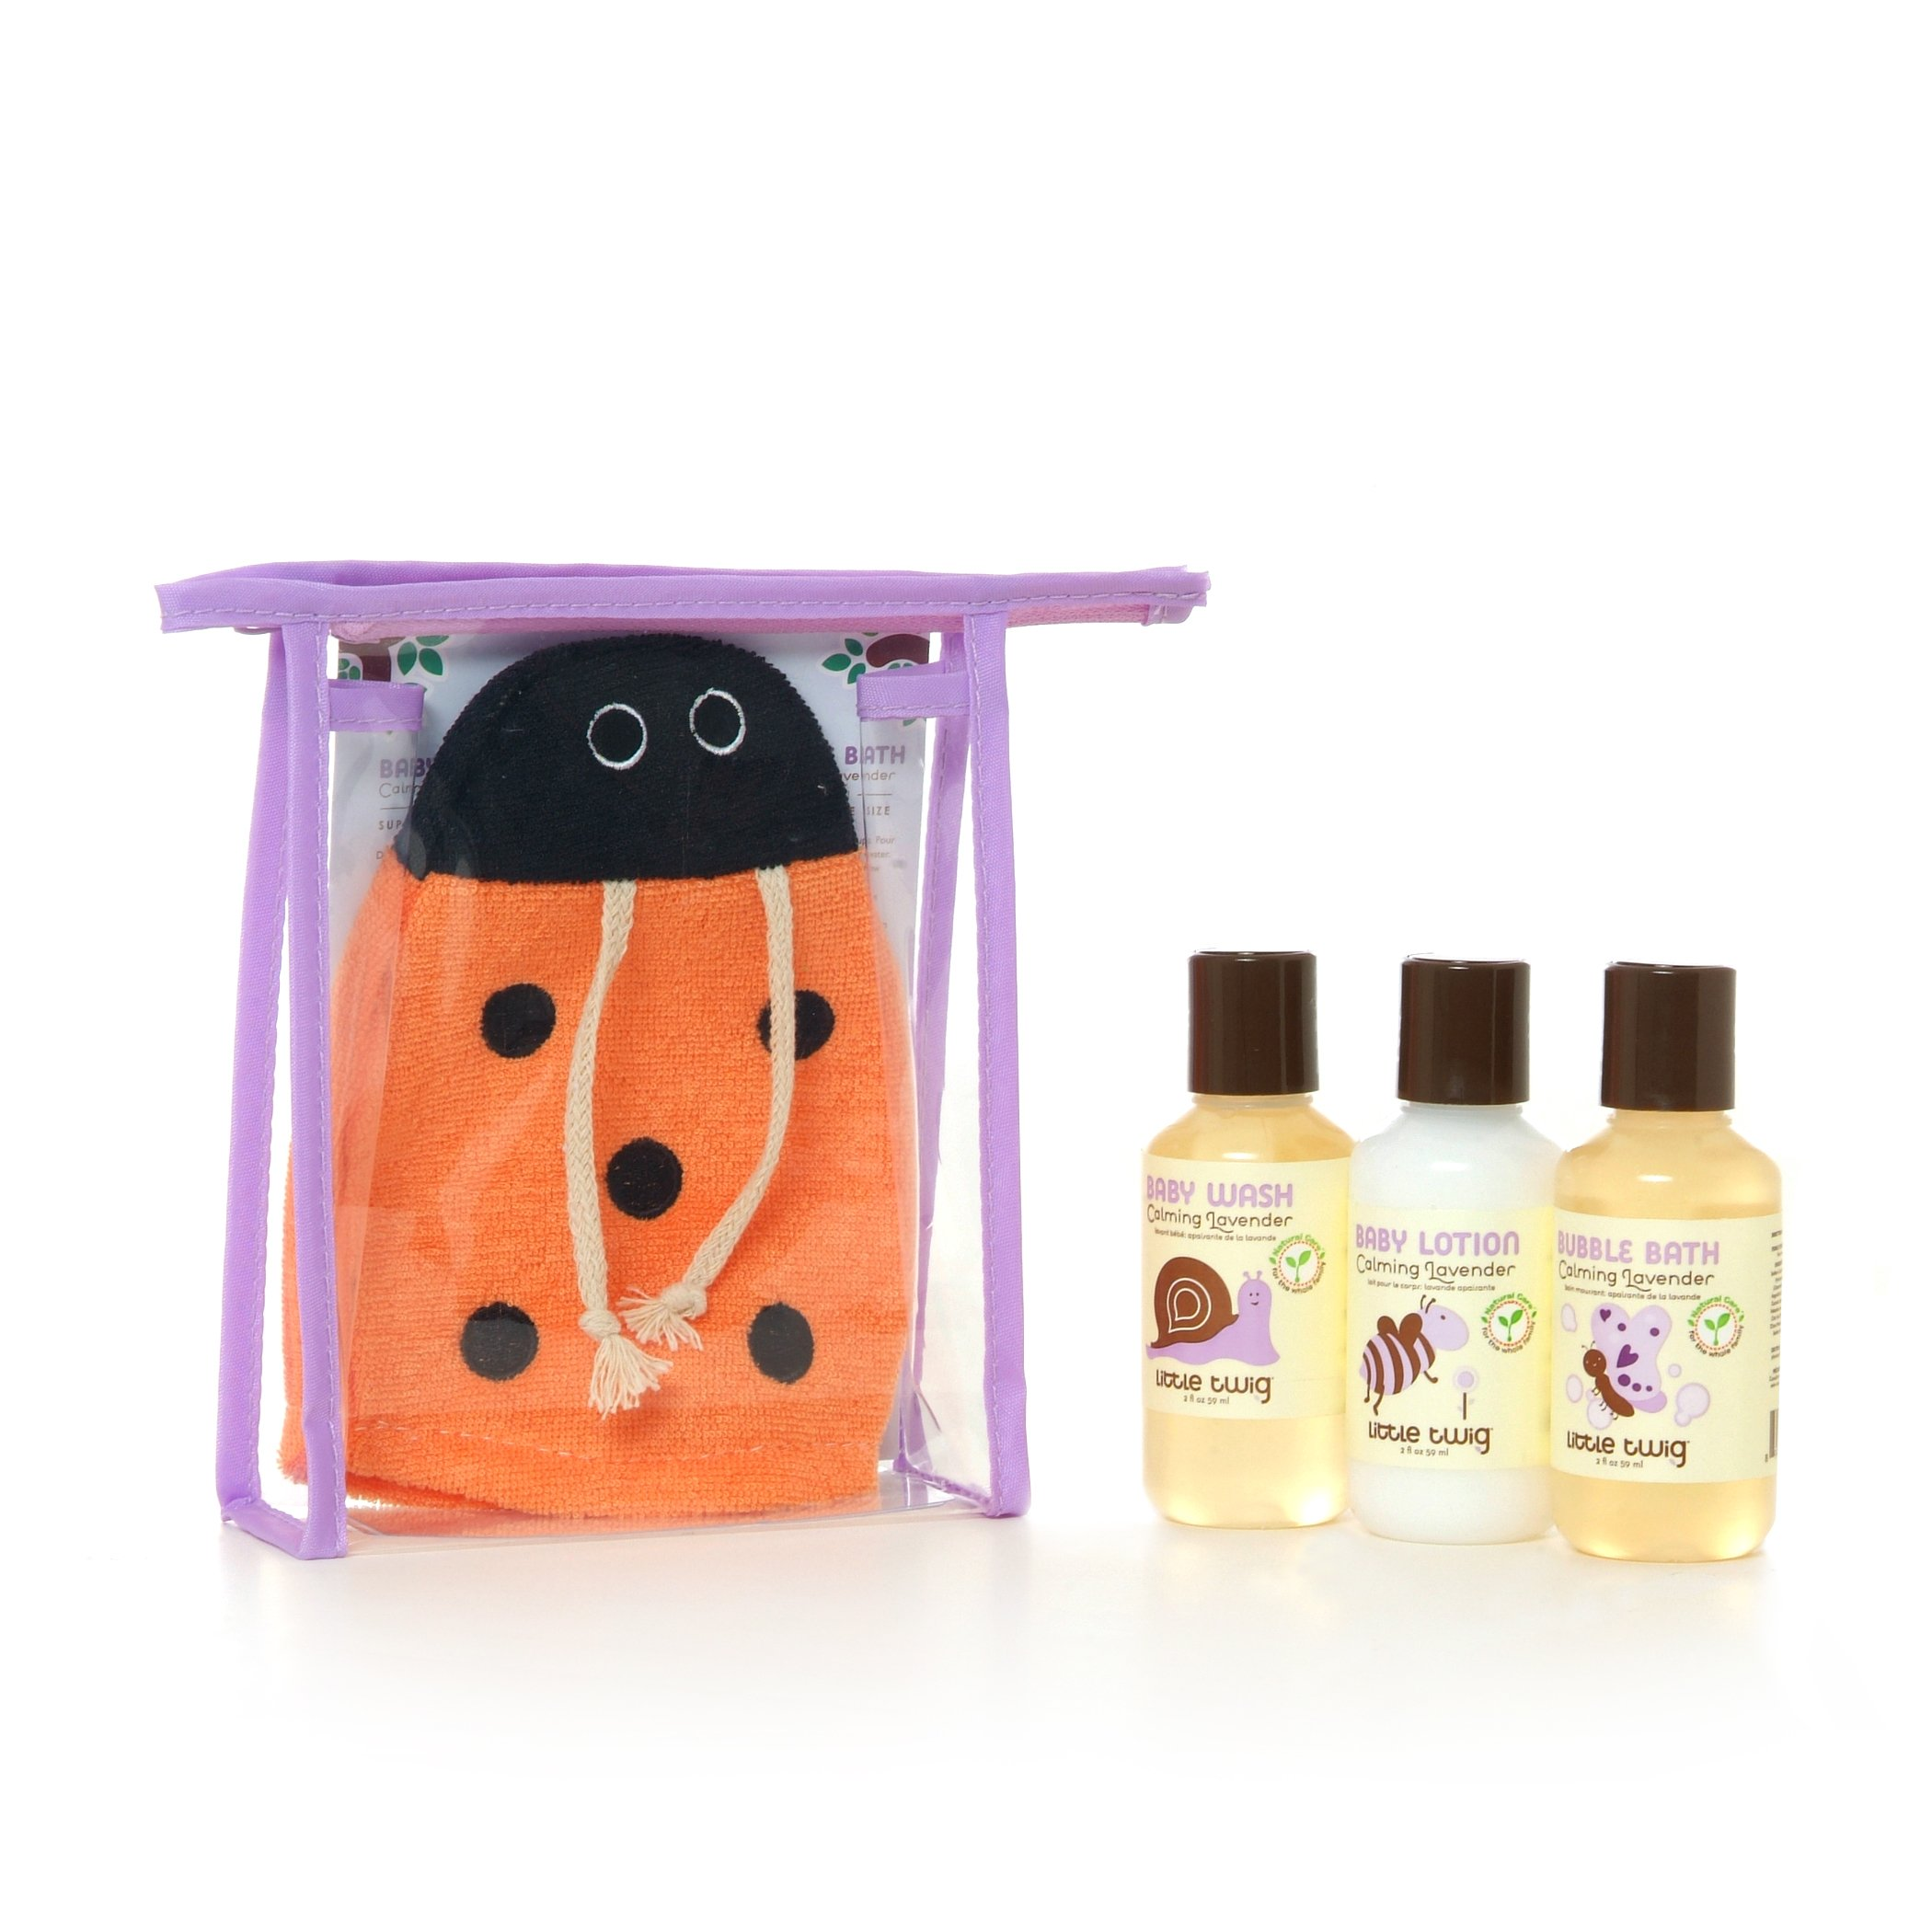 Little Twig All Natural Baby Travel Basics Ladybug Set with Baby Bubble Bath, Lotion, Body Wash, and Bath Mitt, Lavender